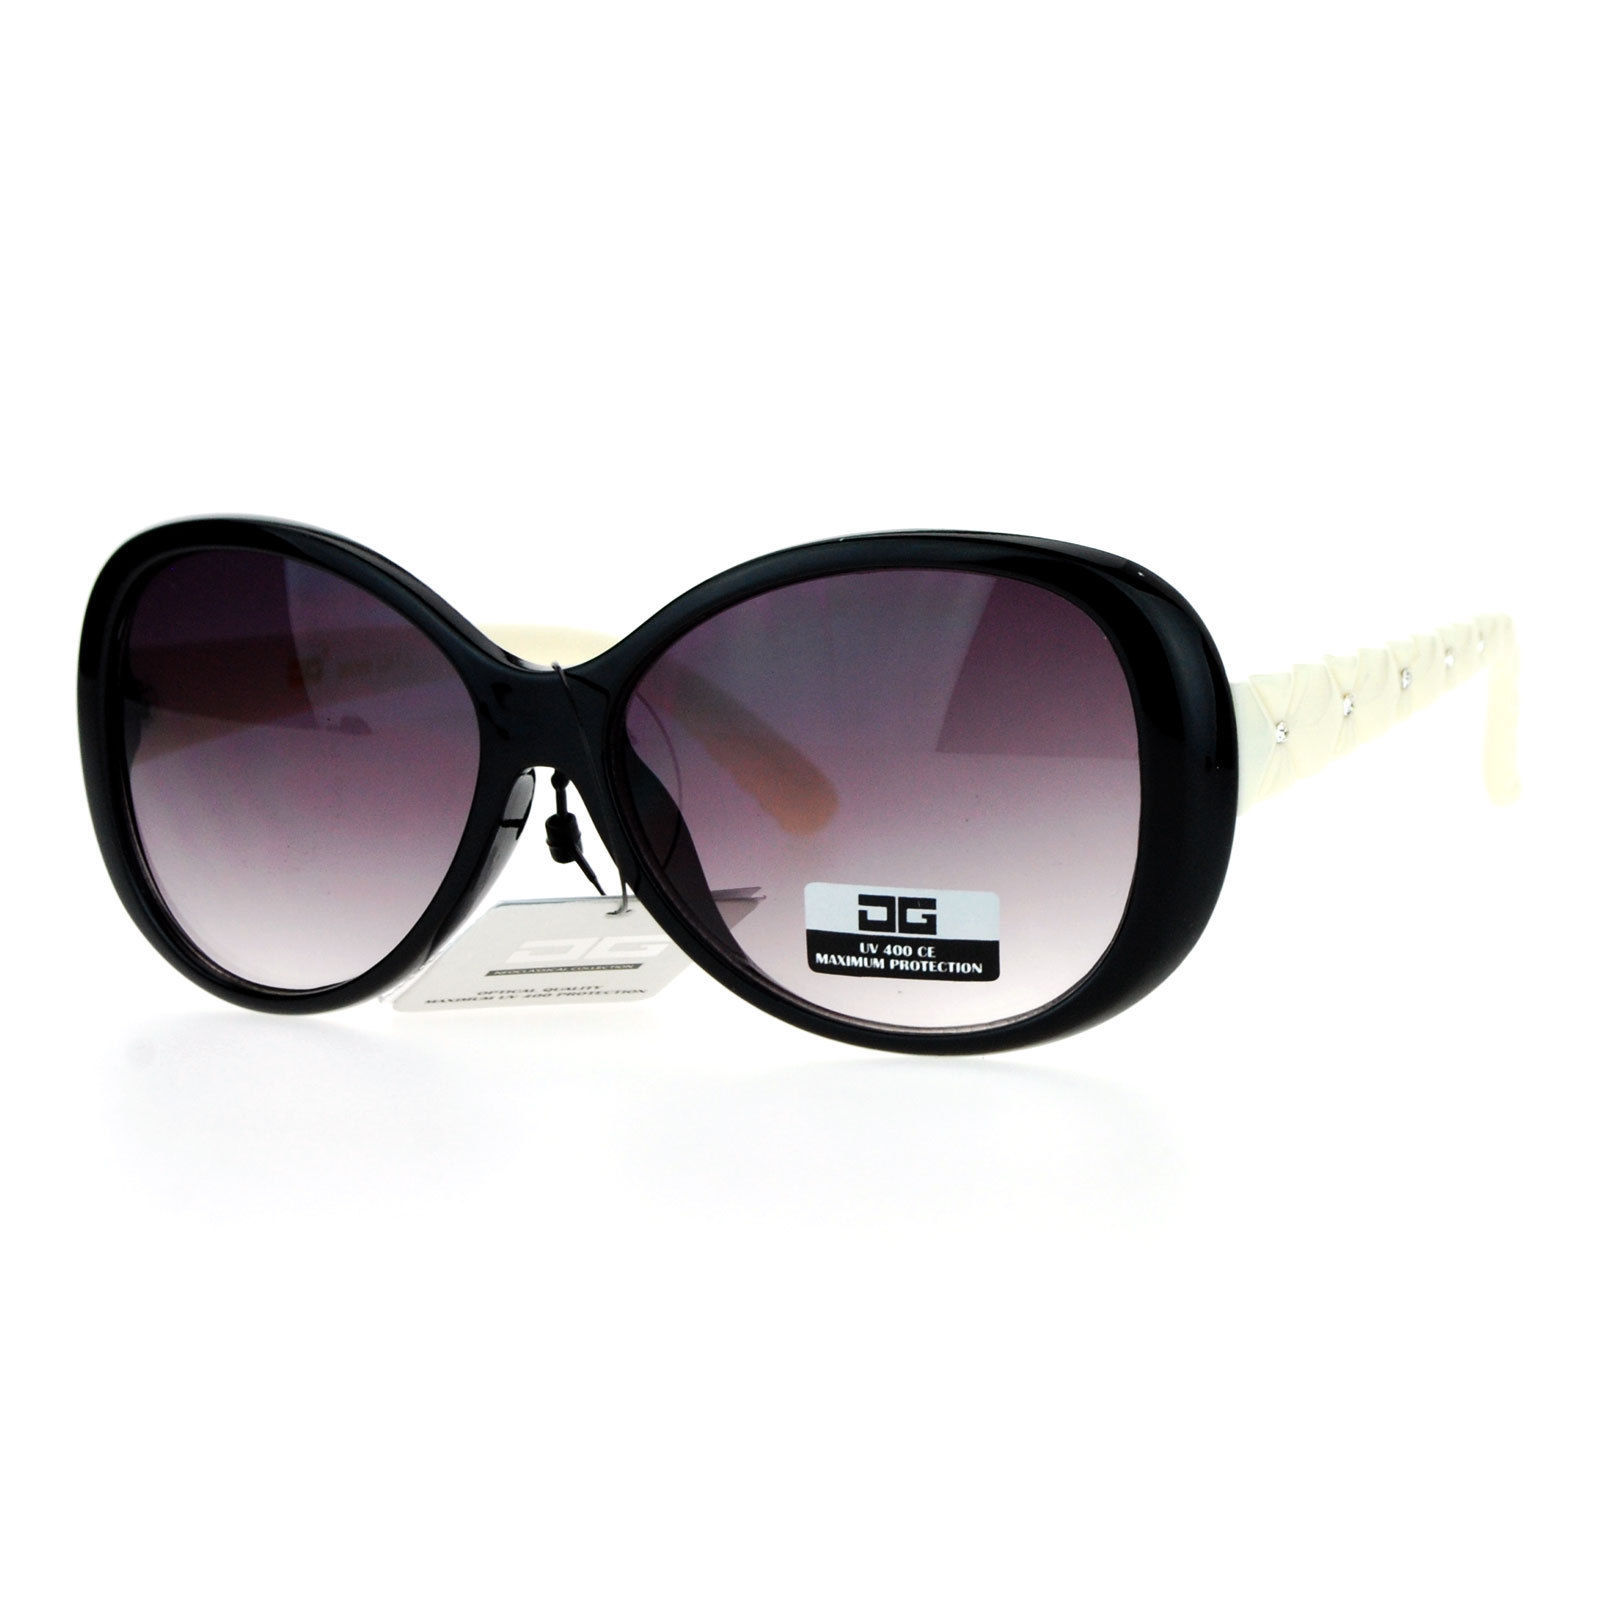 CG Eyewear Womens Sunglasses Round Oval Quilted Look Rhinestones Design